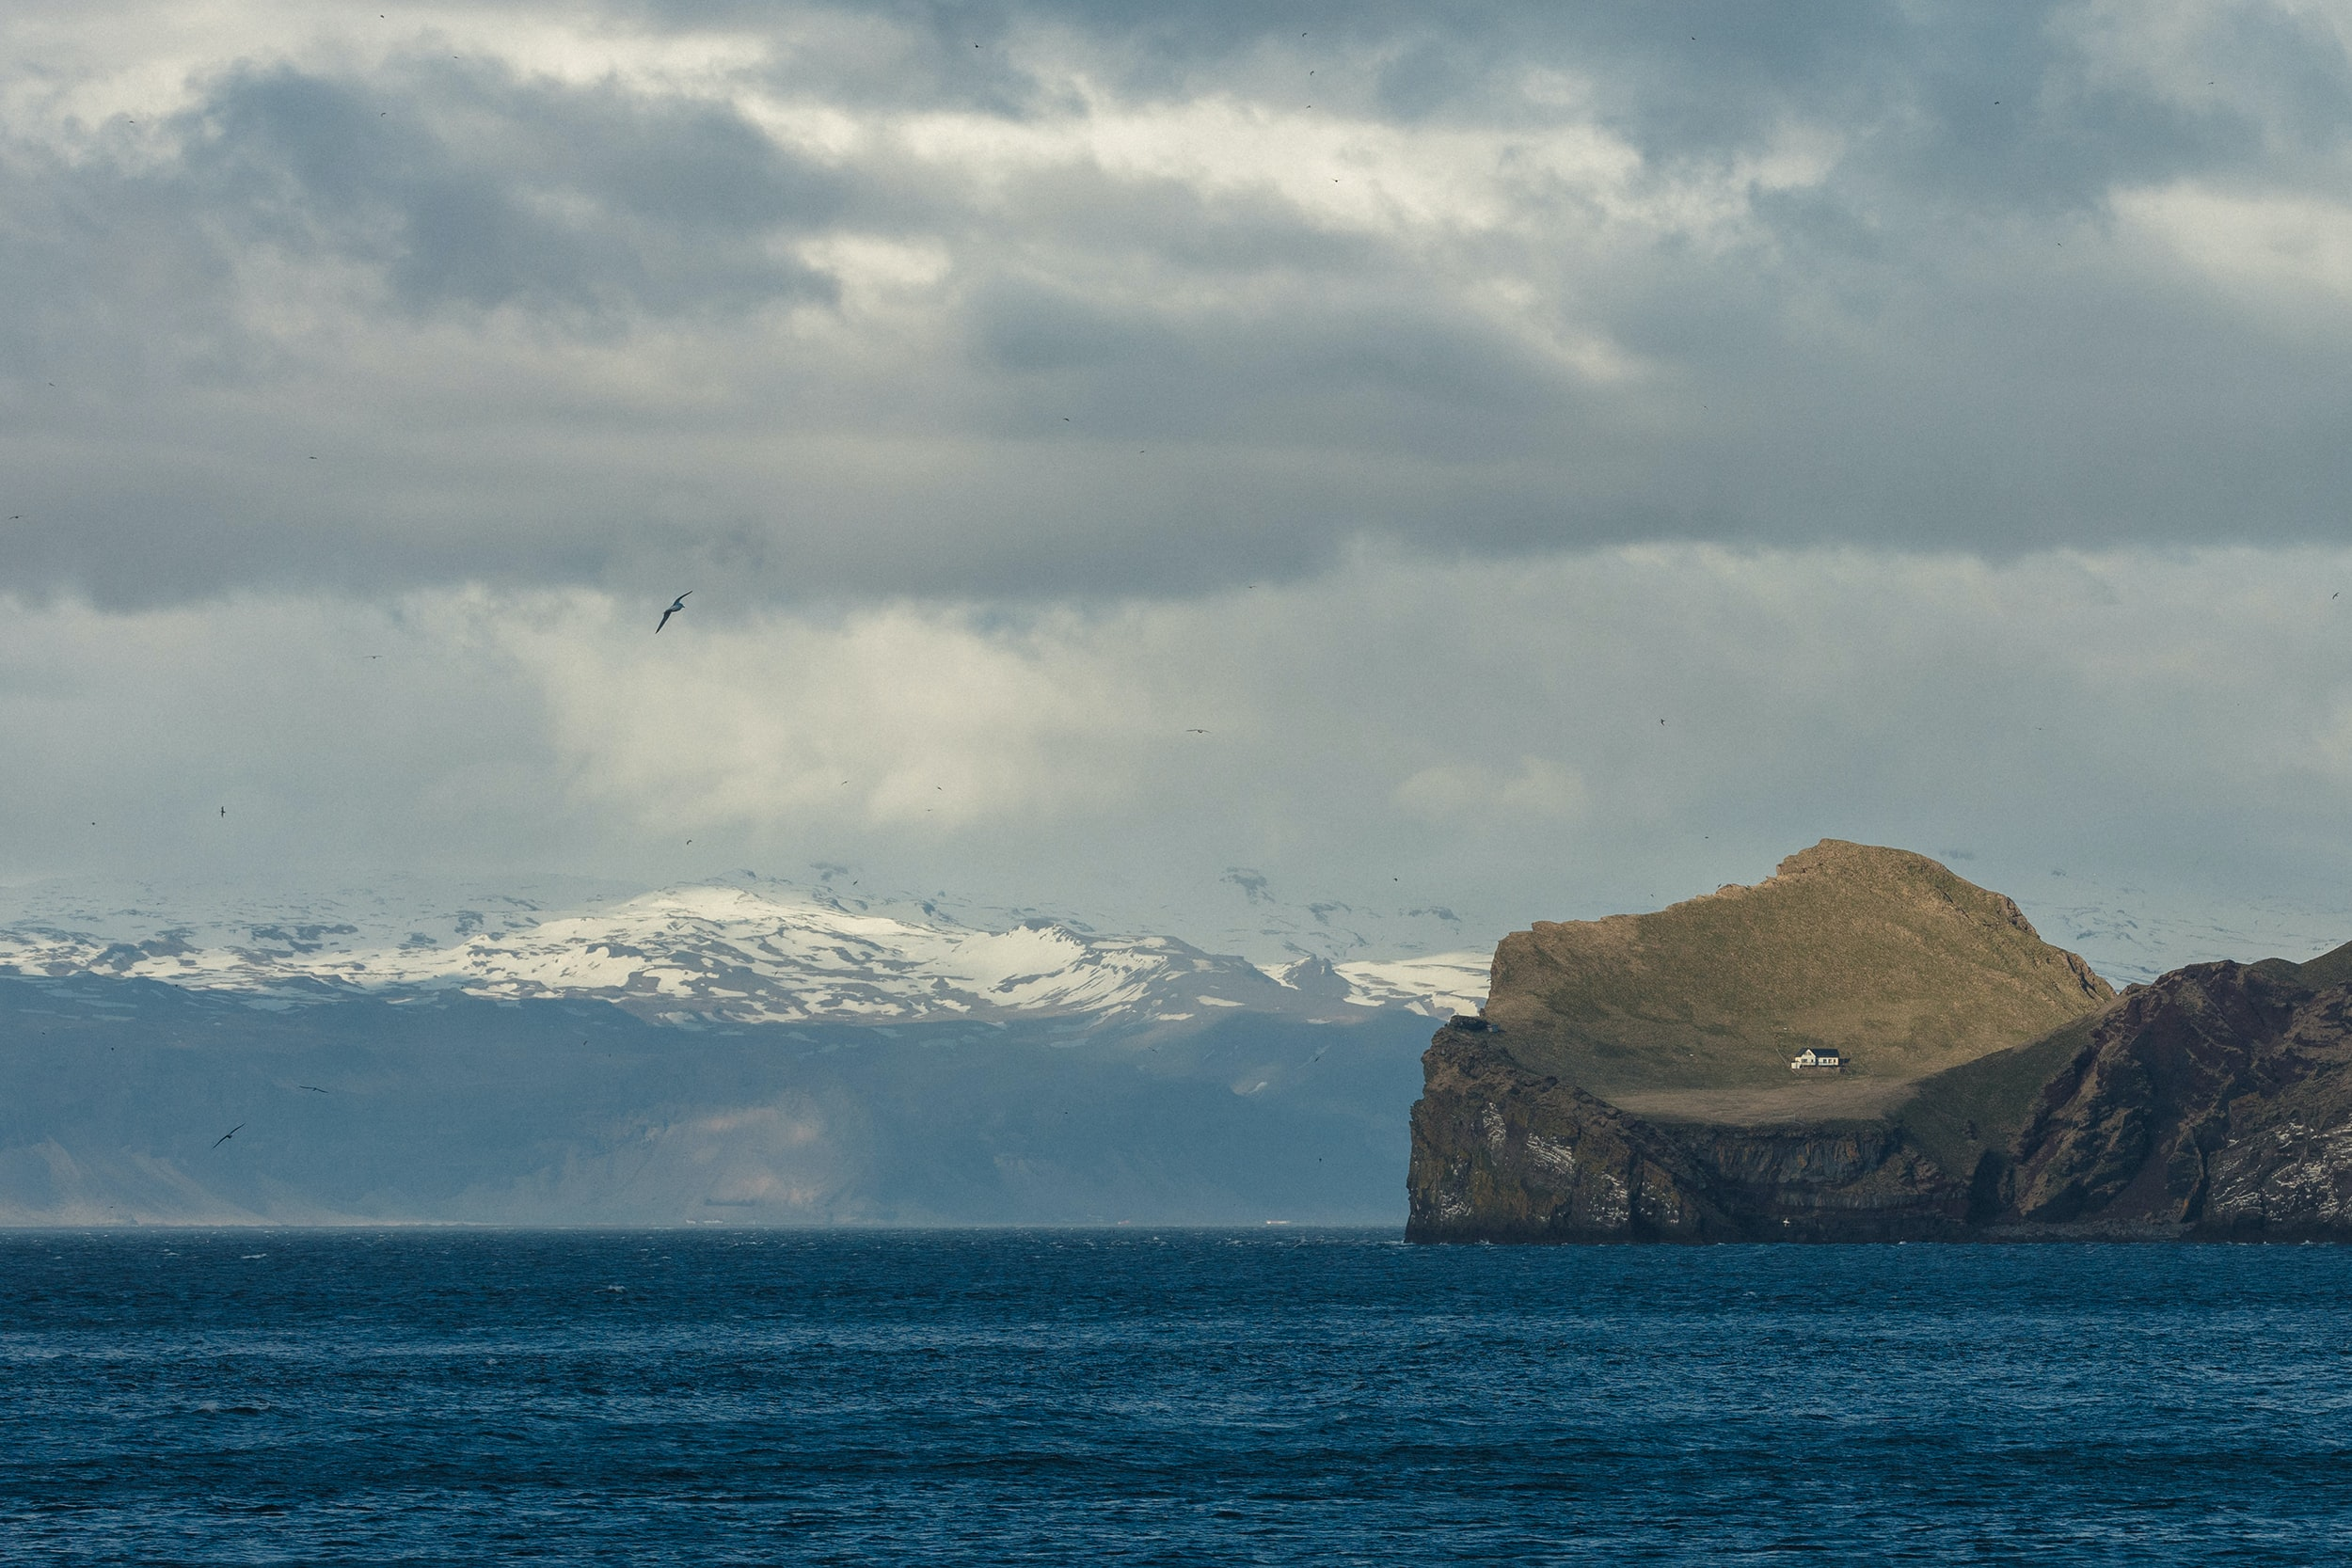 landscape photography of an island and snow covered mountain